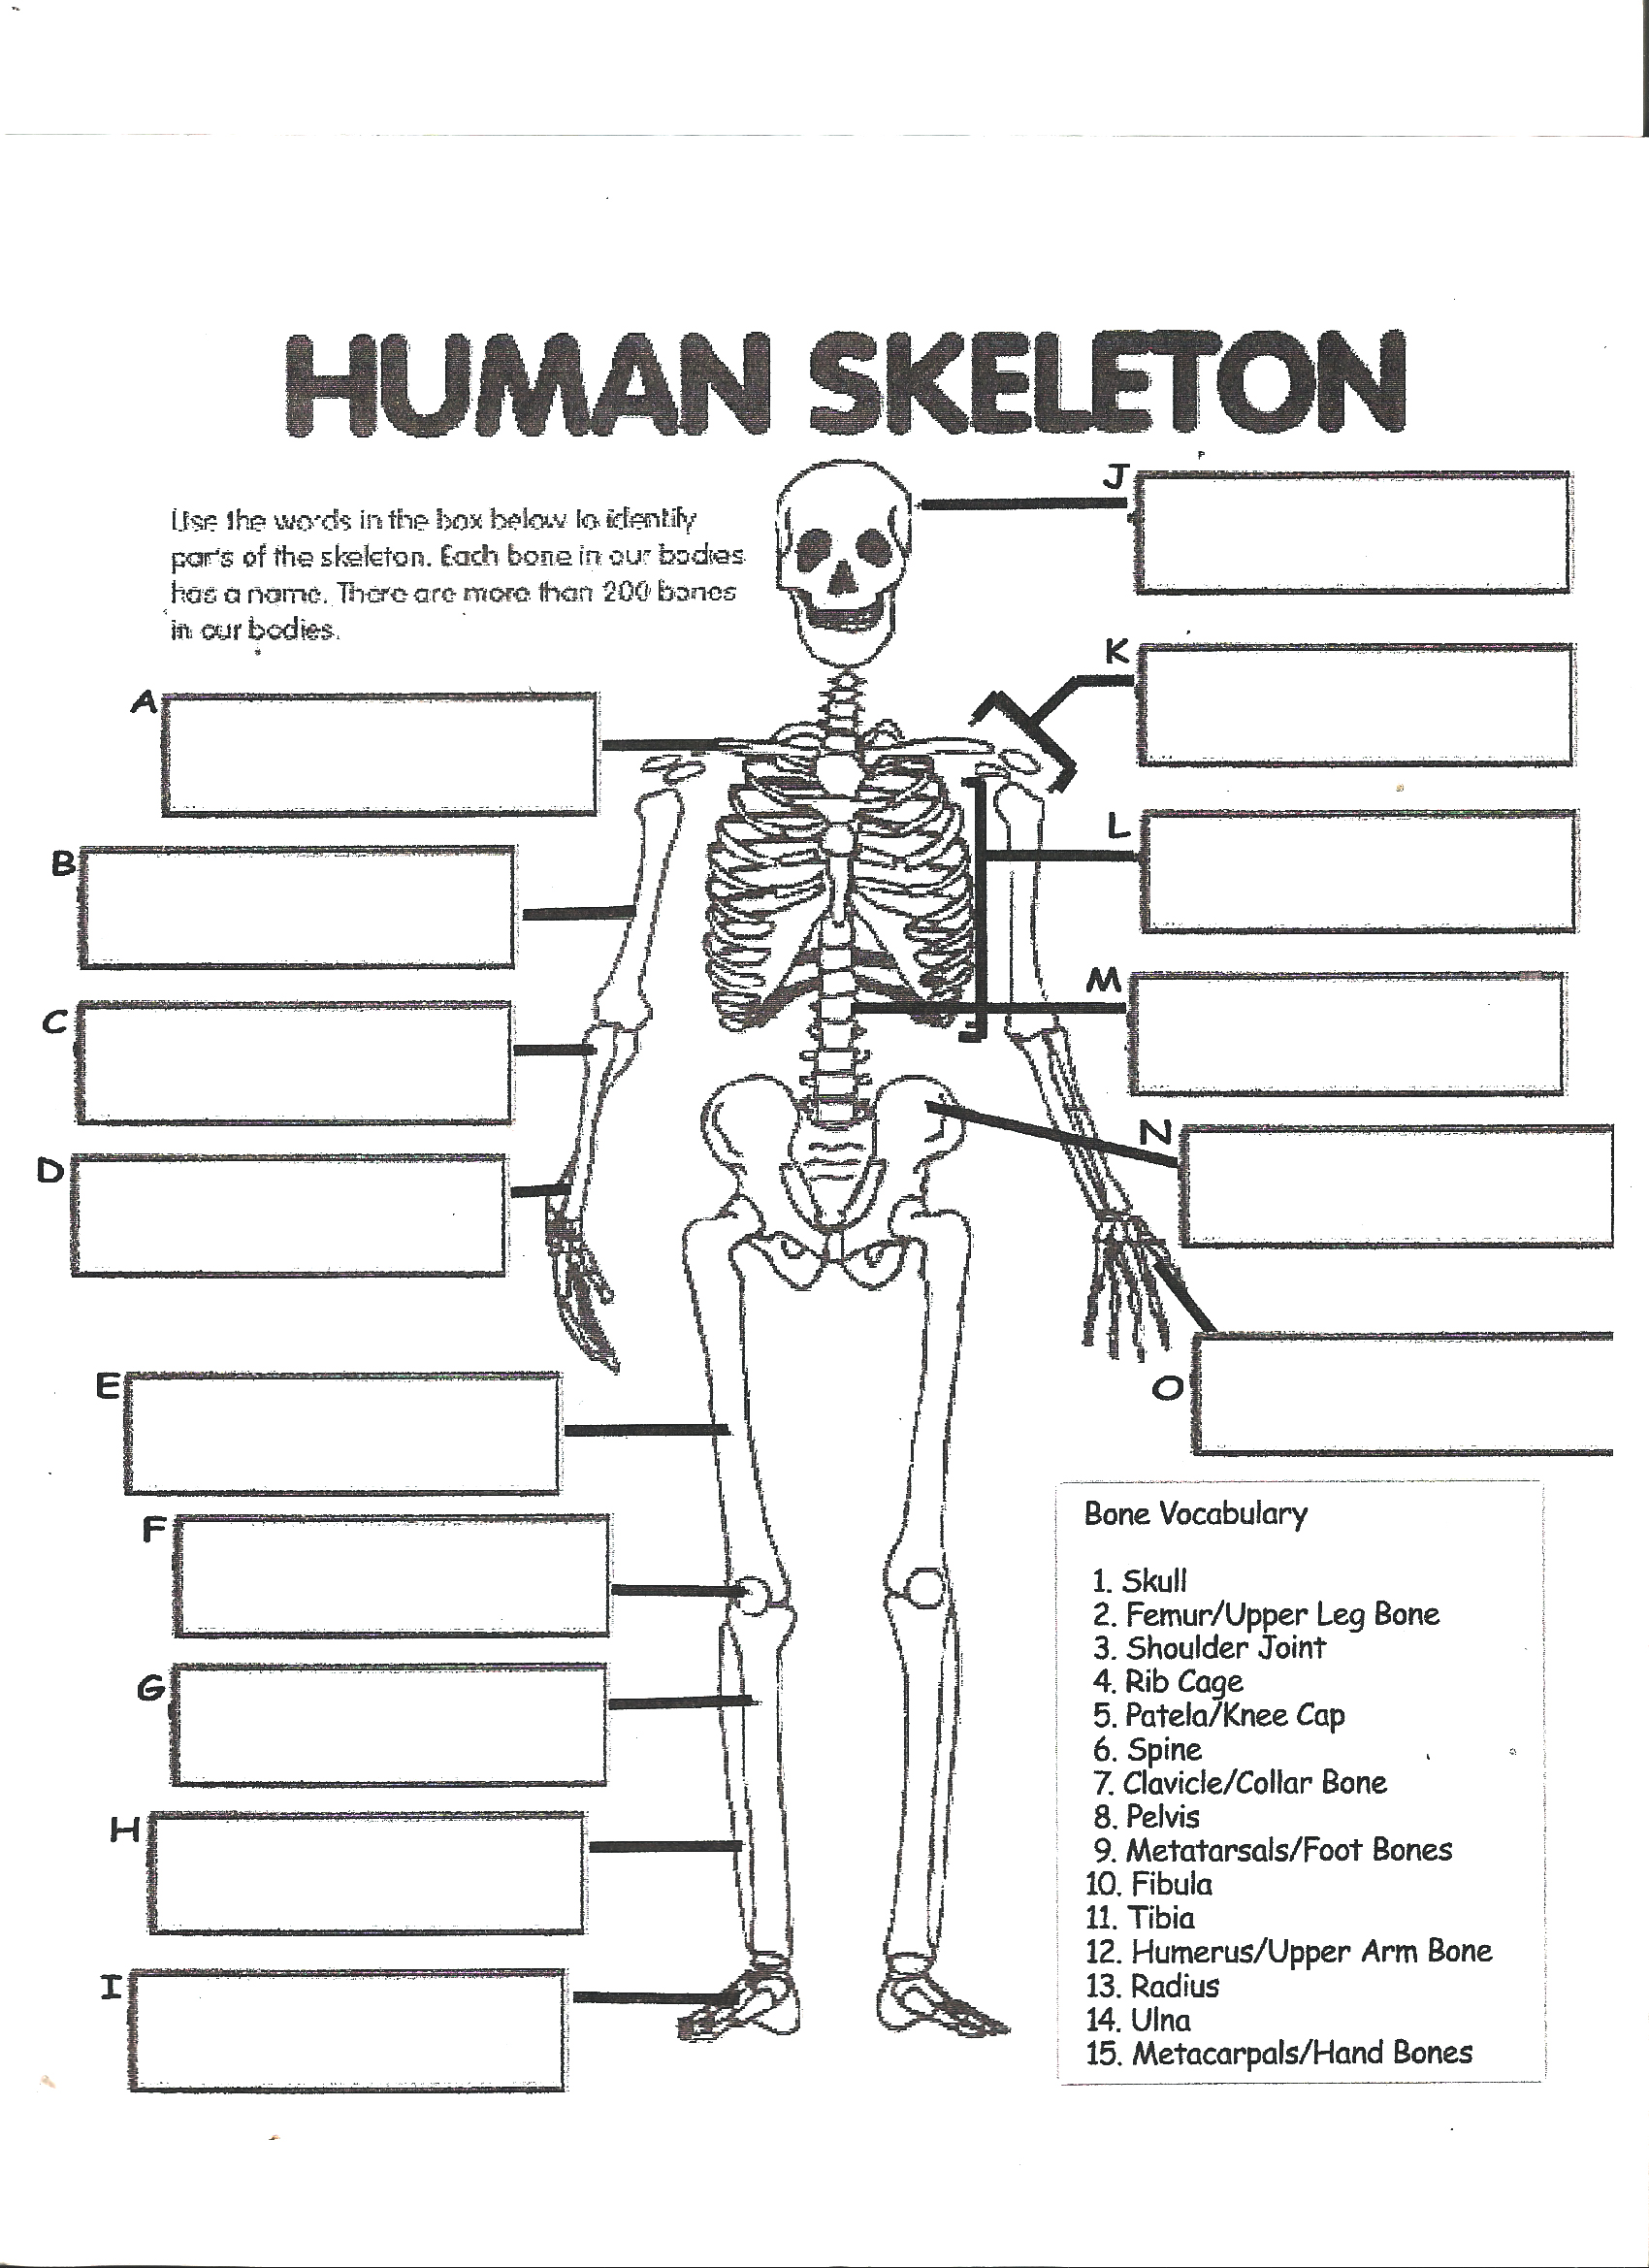 Printables Skeletal System Worksheet the skeletal system worksheet abitlikethis pics photos label funny jpg